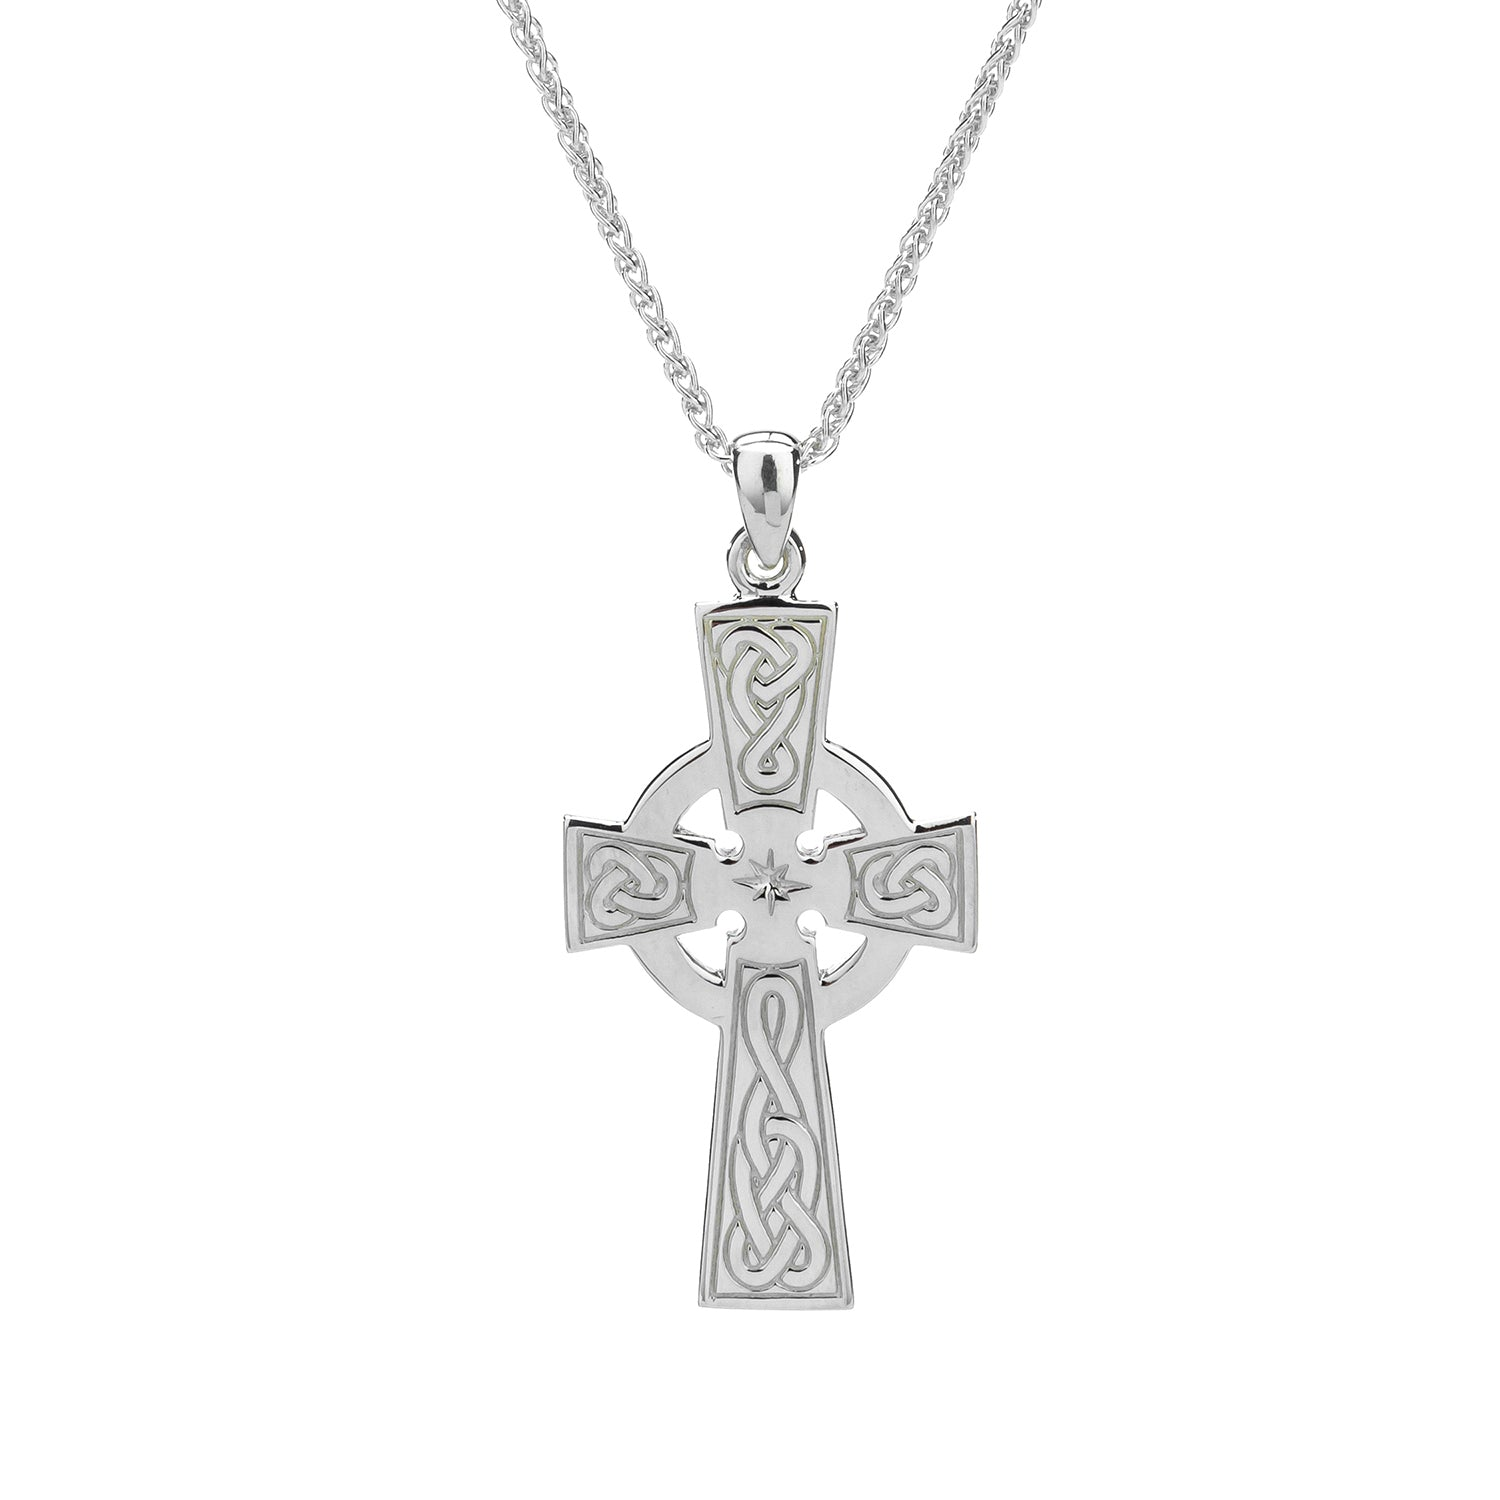 Pendant Celtic Cross Large Pendant from welch and company jewelers near syracuse ny